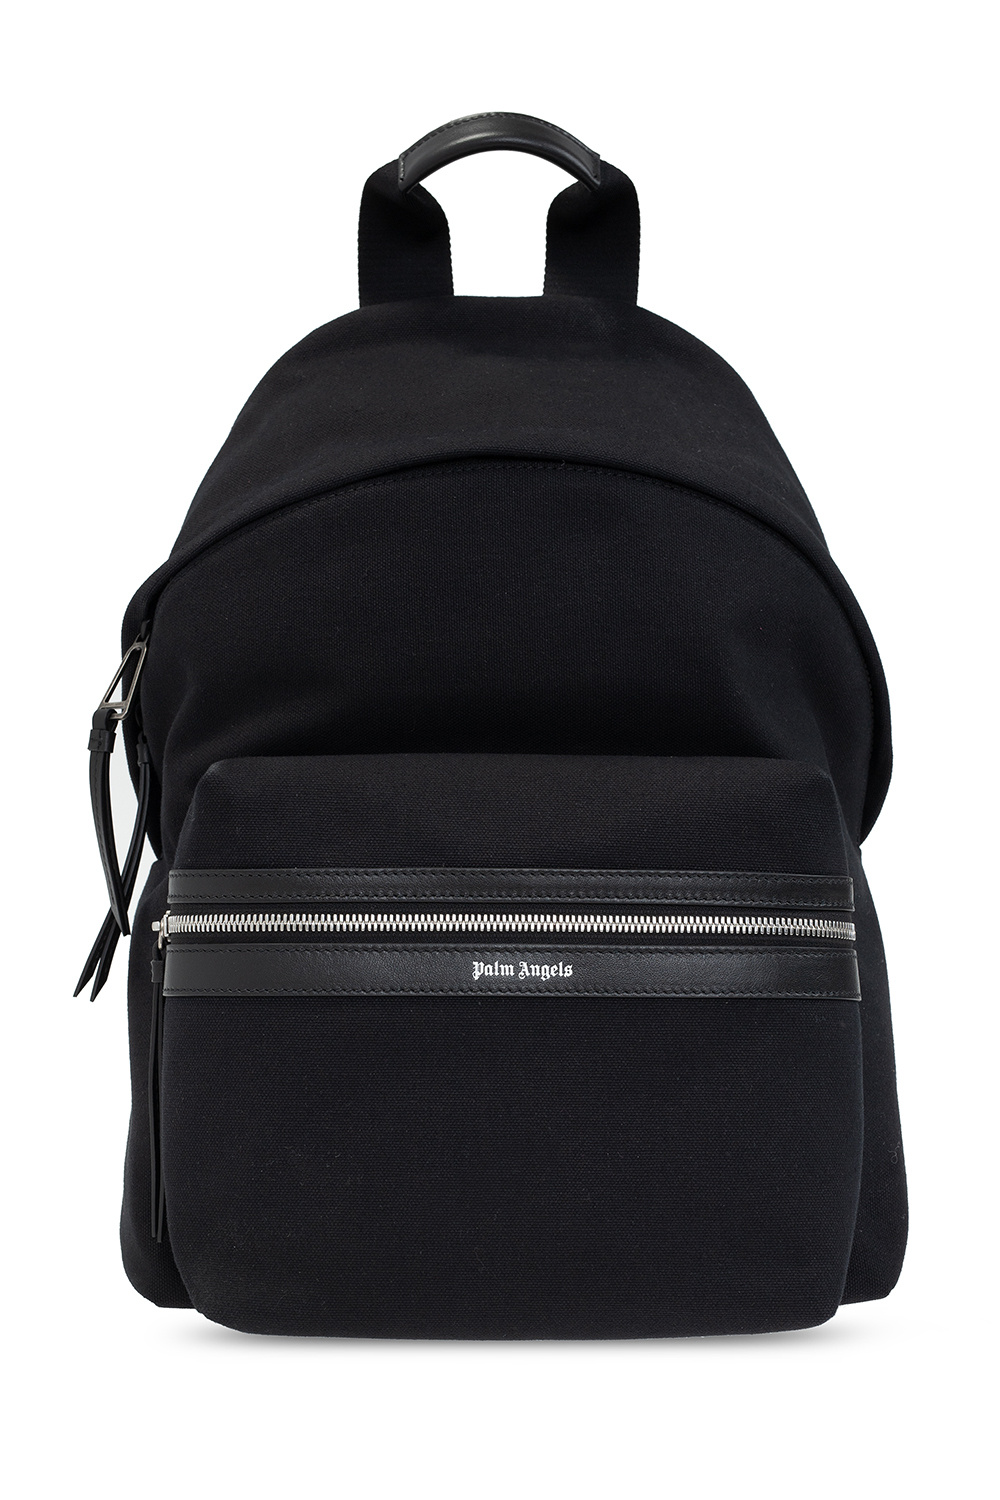 Palm Angels Backpack with logo